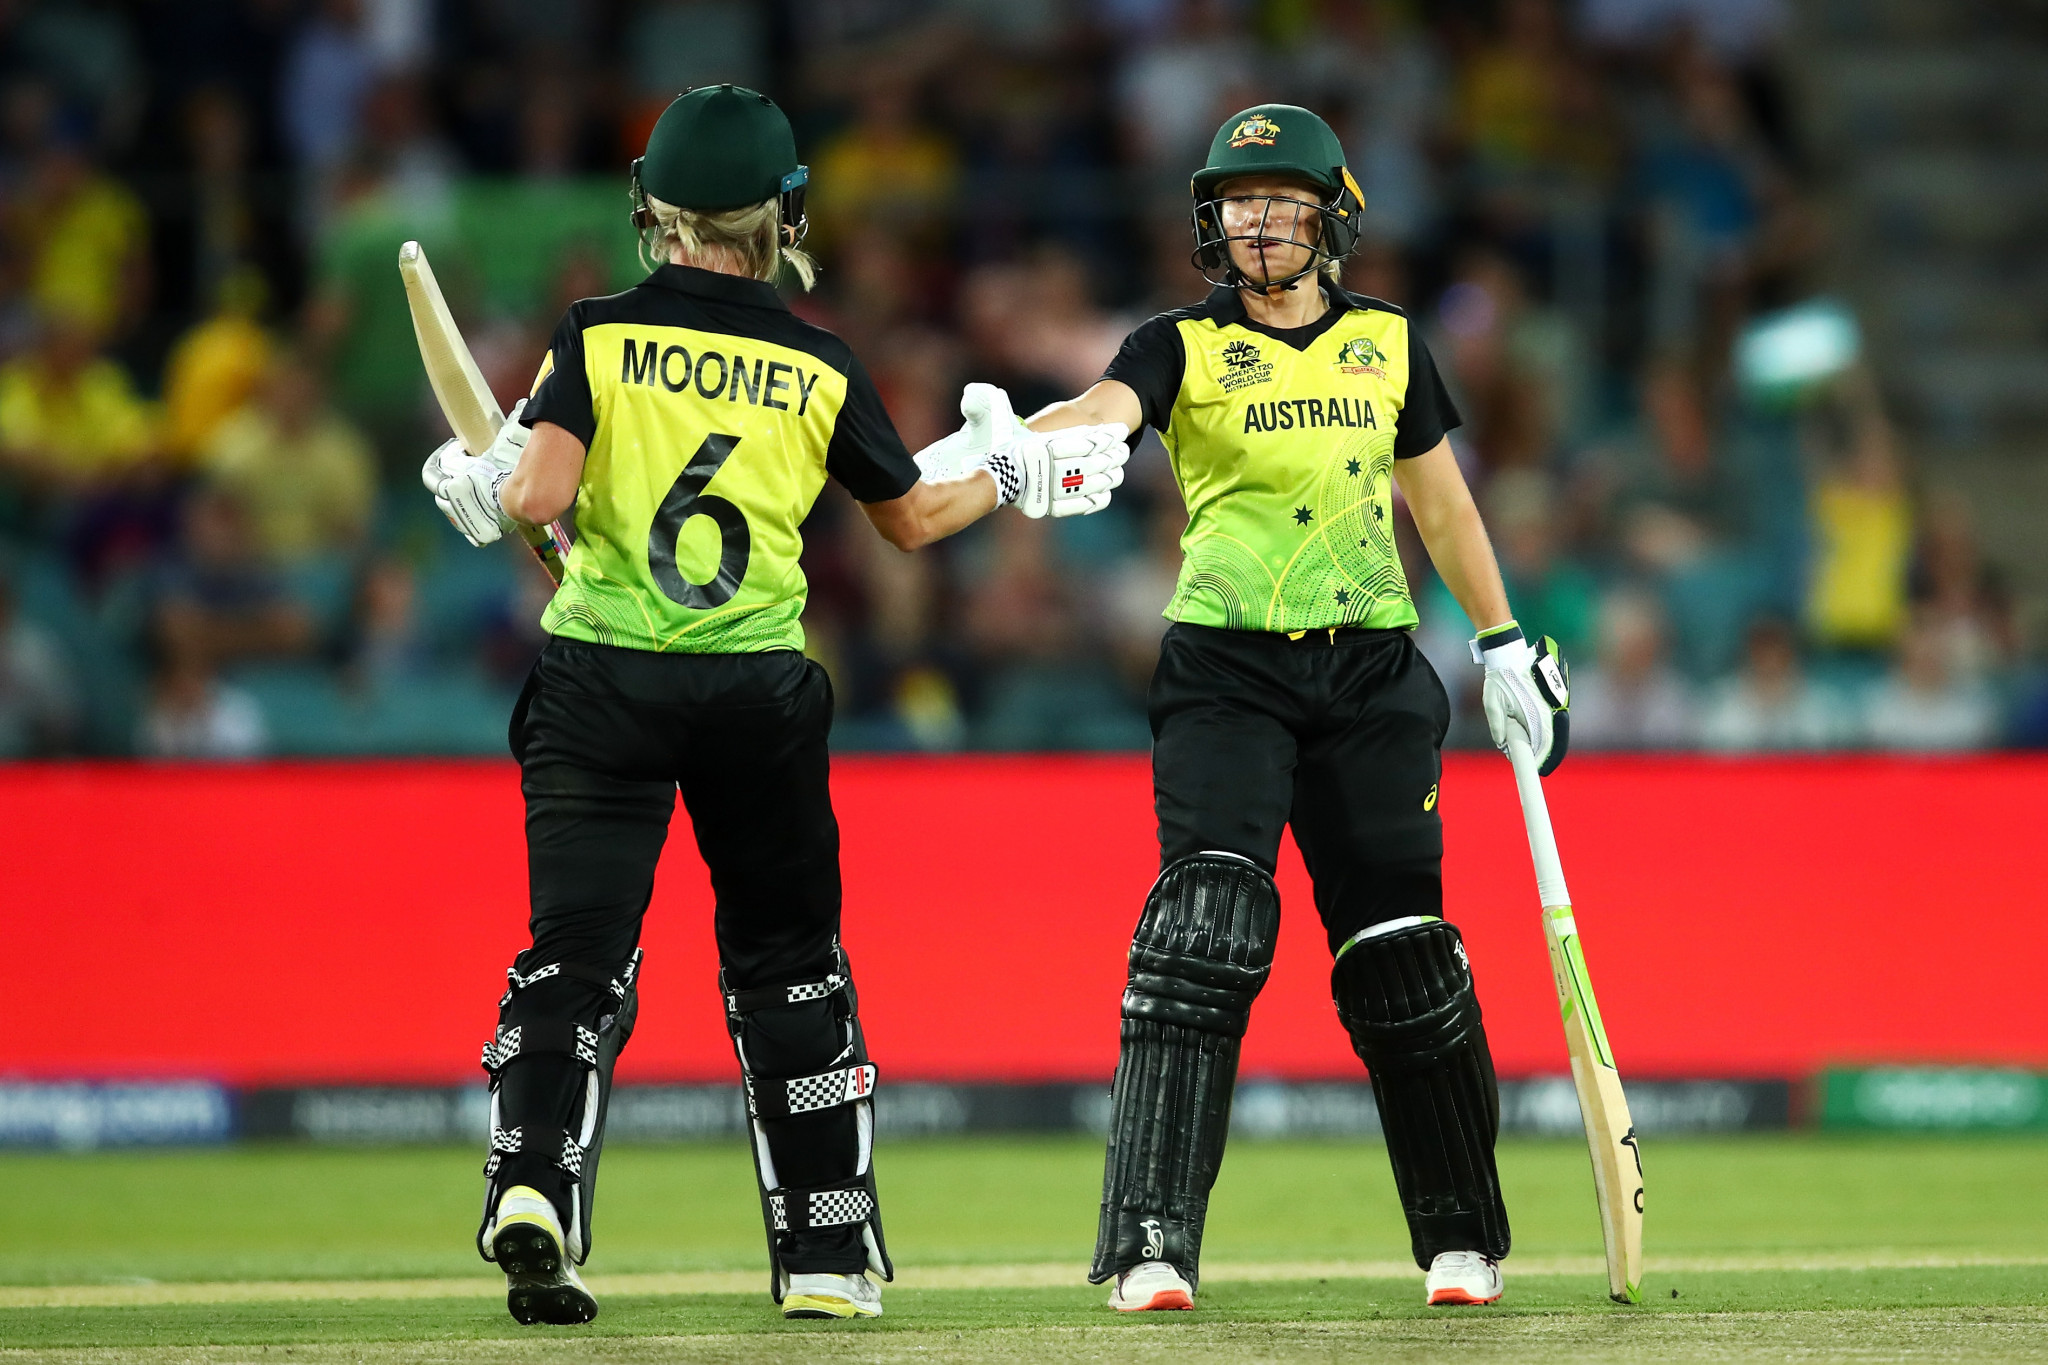 Alyssa Healy and Beth Mooney produced a massive opening partnership in Australia's win over Bangladesh ©Getty Images